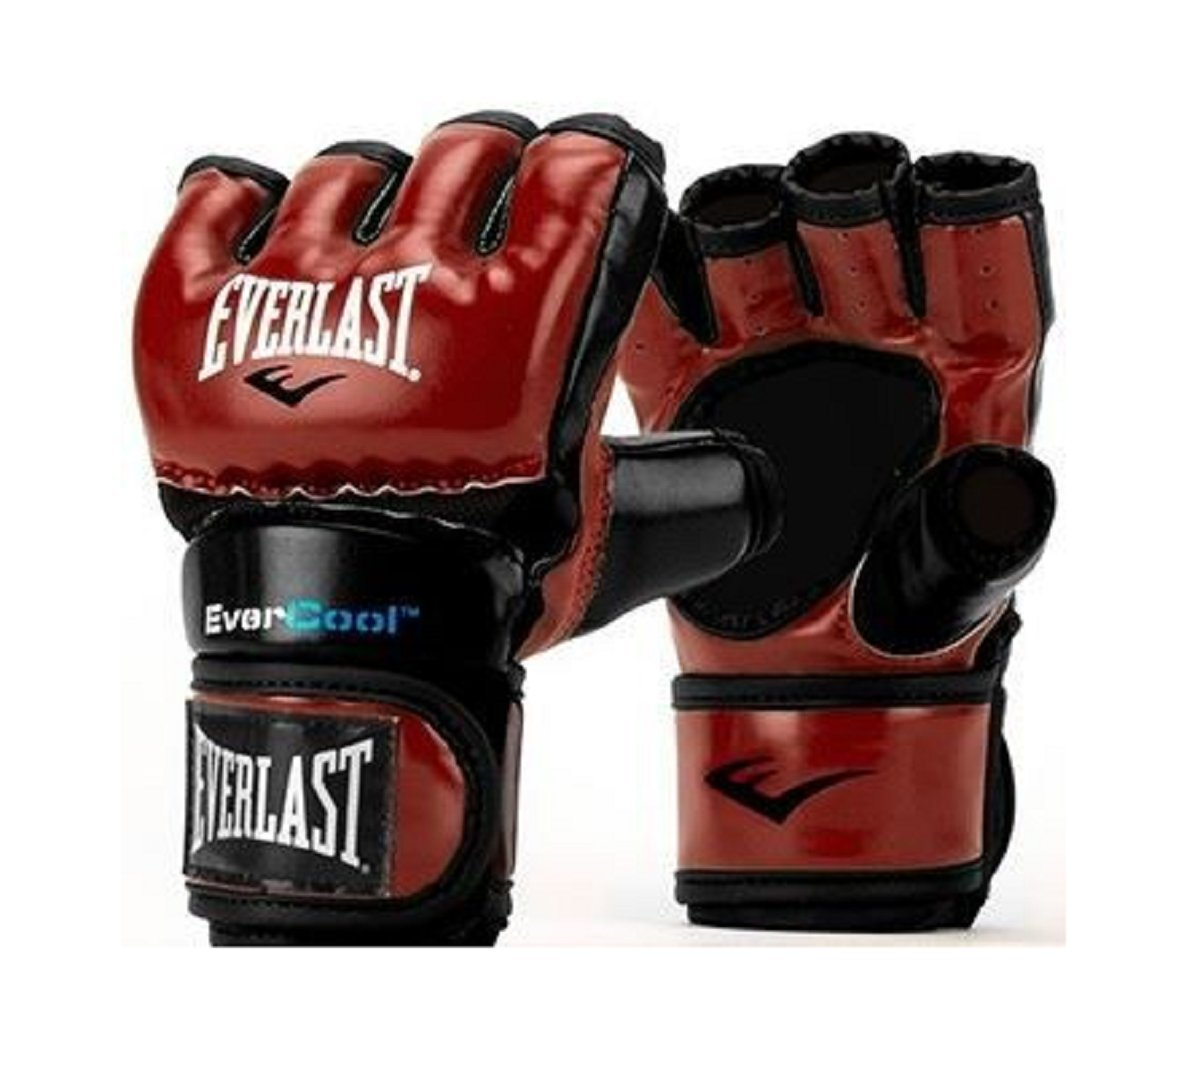 Everlast Everstrike Training Gloves by Everlast